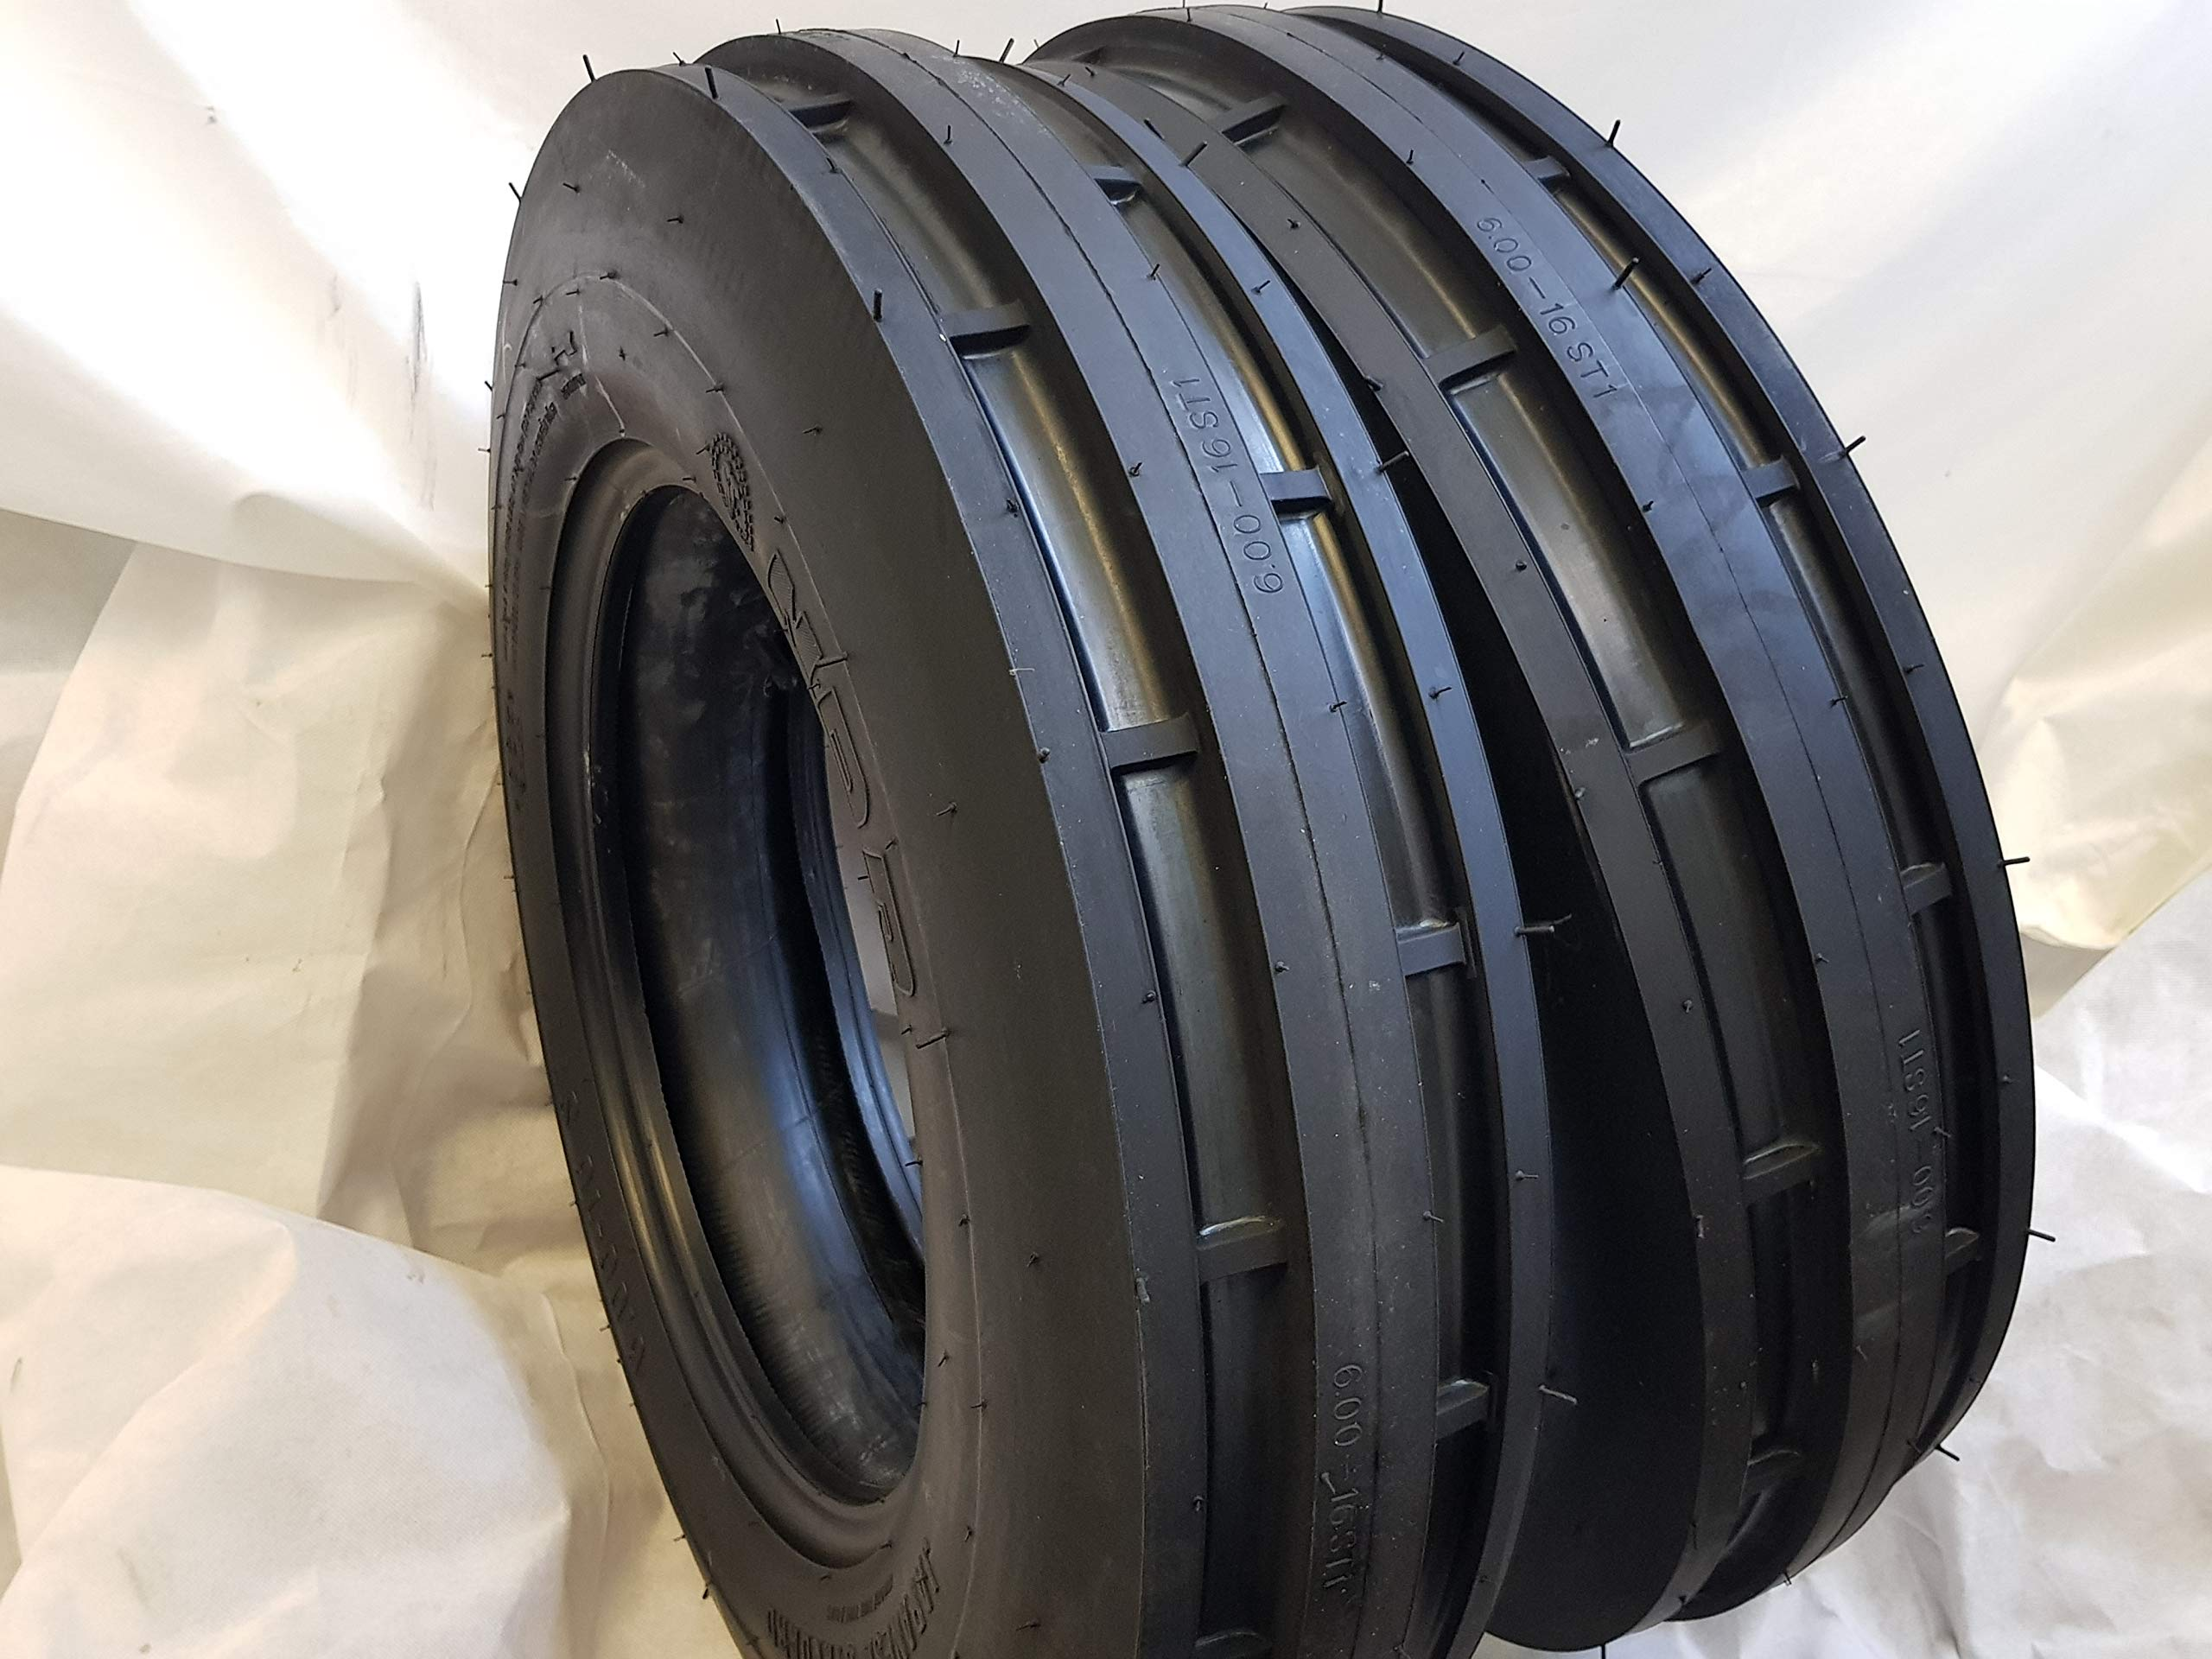 (2 TIRES + 2 TUBES) 6.00-16 8 PLY ROAD WARRIOR NDR ST-1 F2 3-Rib Farm Tractor Tire 6.00x16 by ROAD WARRIOR NDR (Image #3)